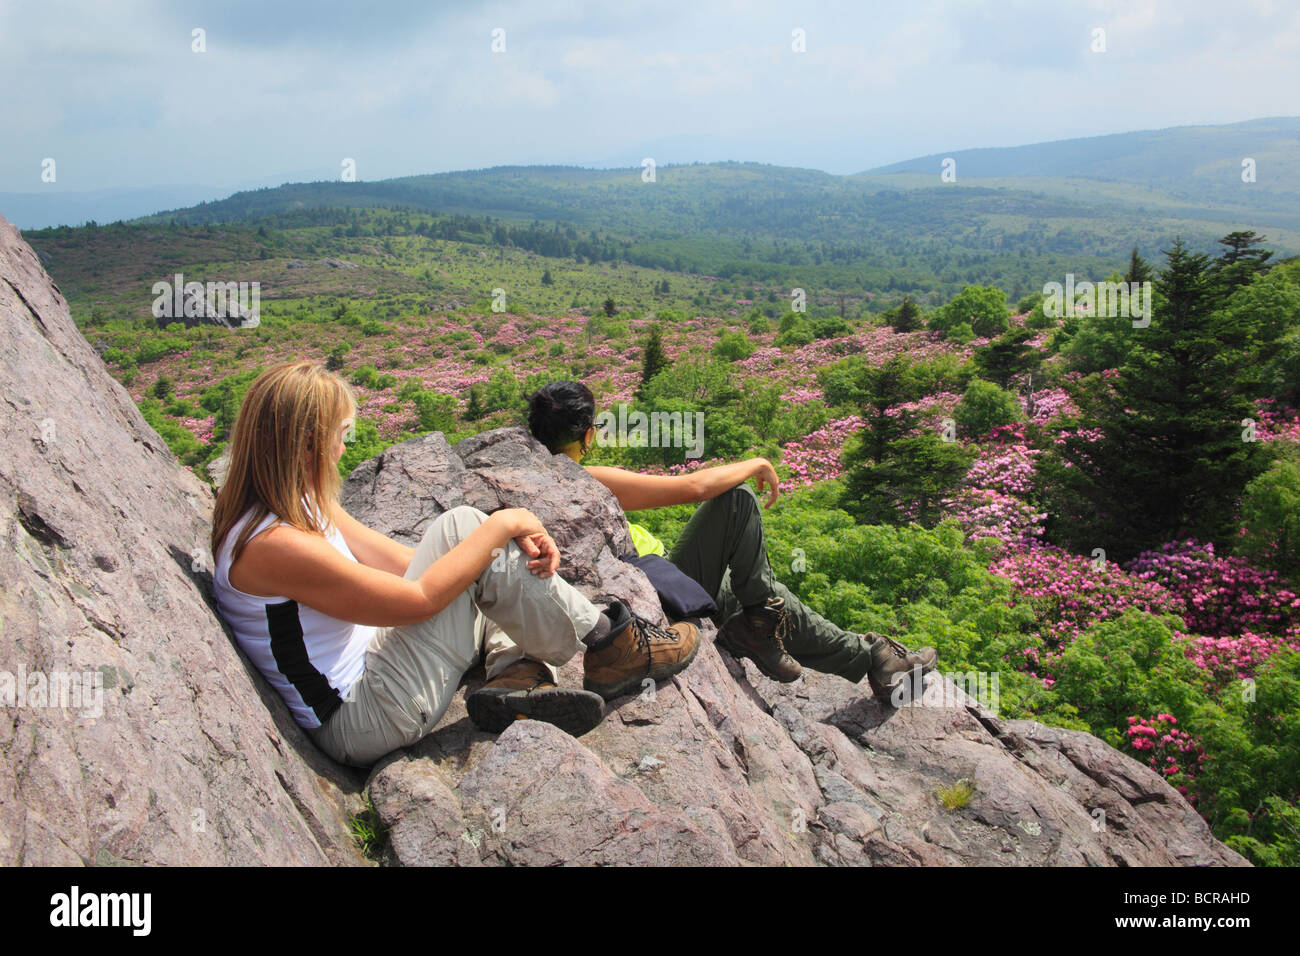 Appalachian Trail Hikers Rest in Rhododendron Gap Mount Rogers National Recreation Area Virginia - Stock Image